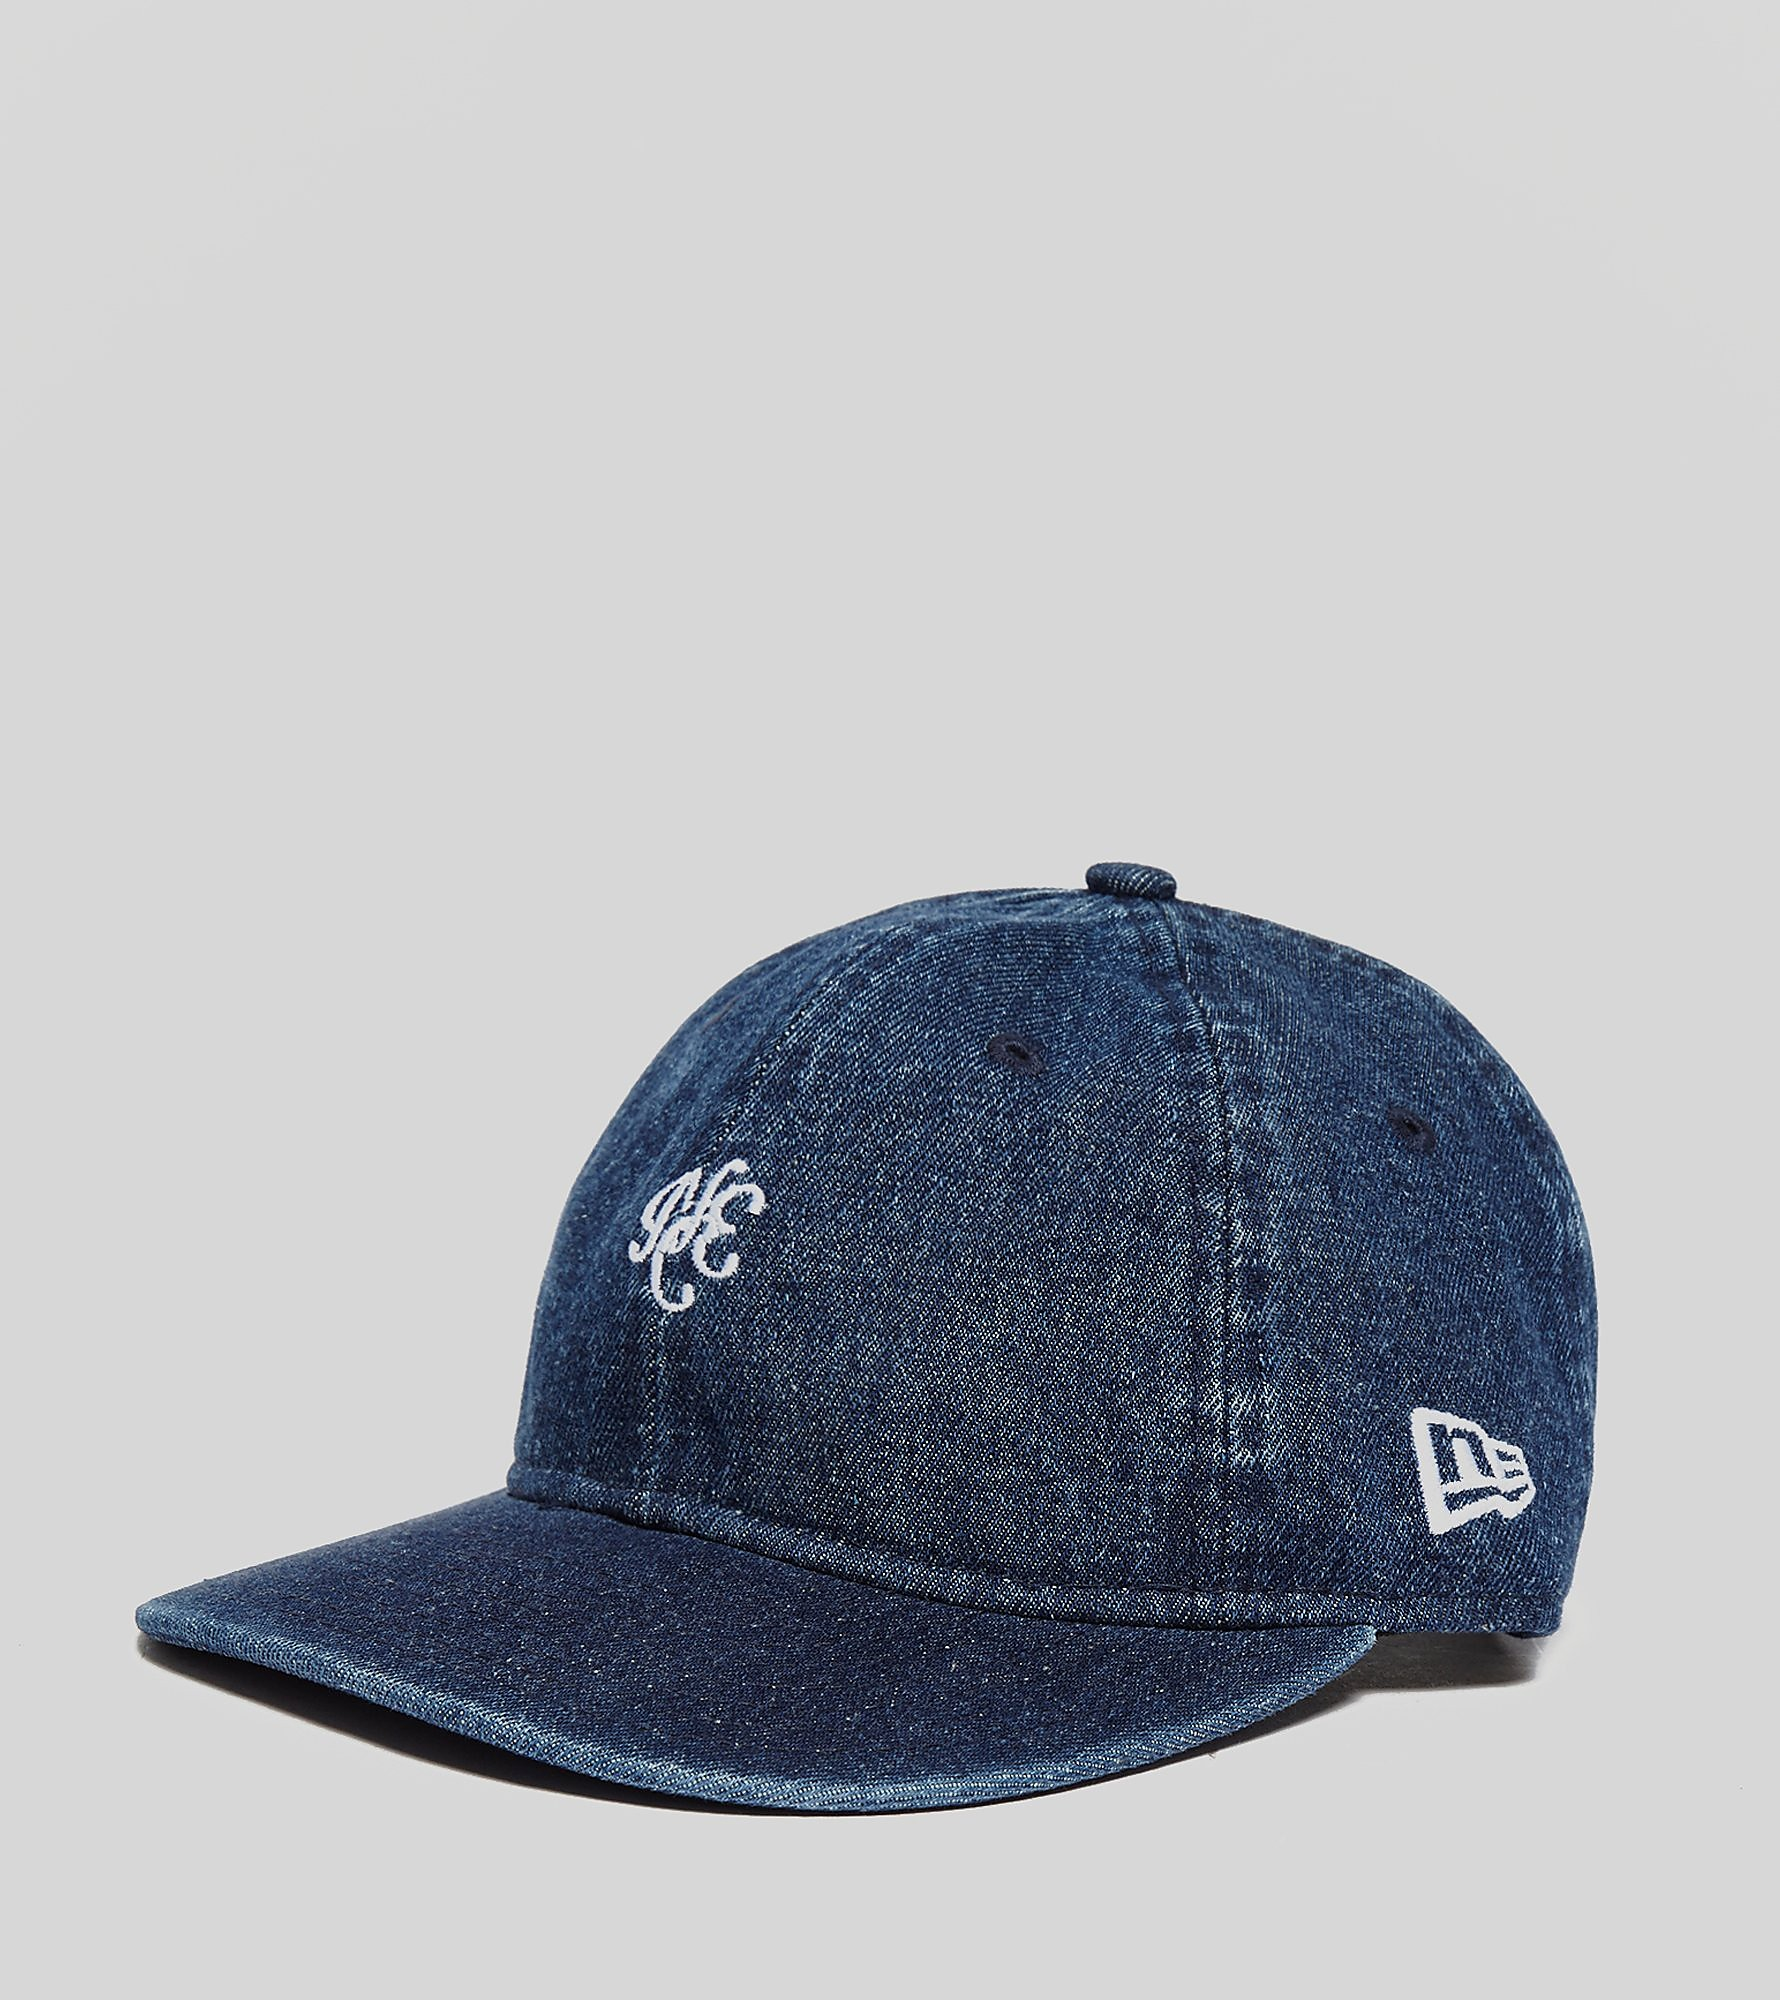 New Era 9FIFTY Indigo Denim Cap - size? Exclusive